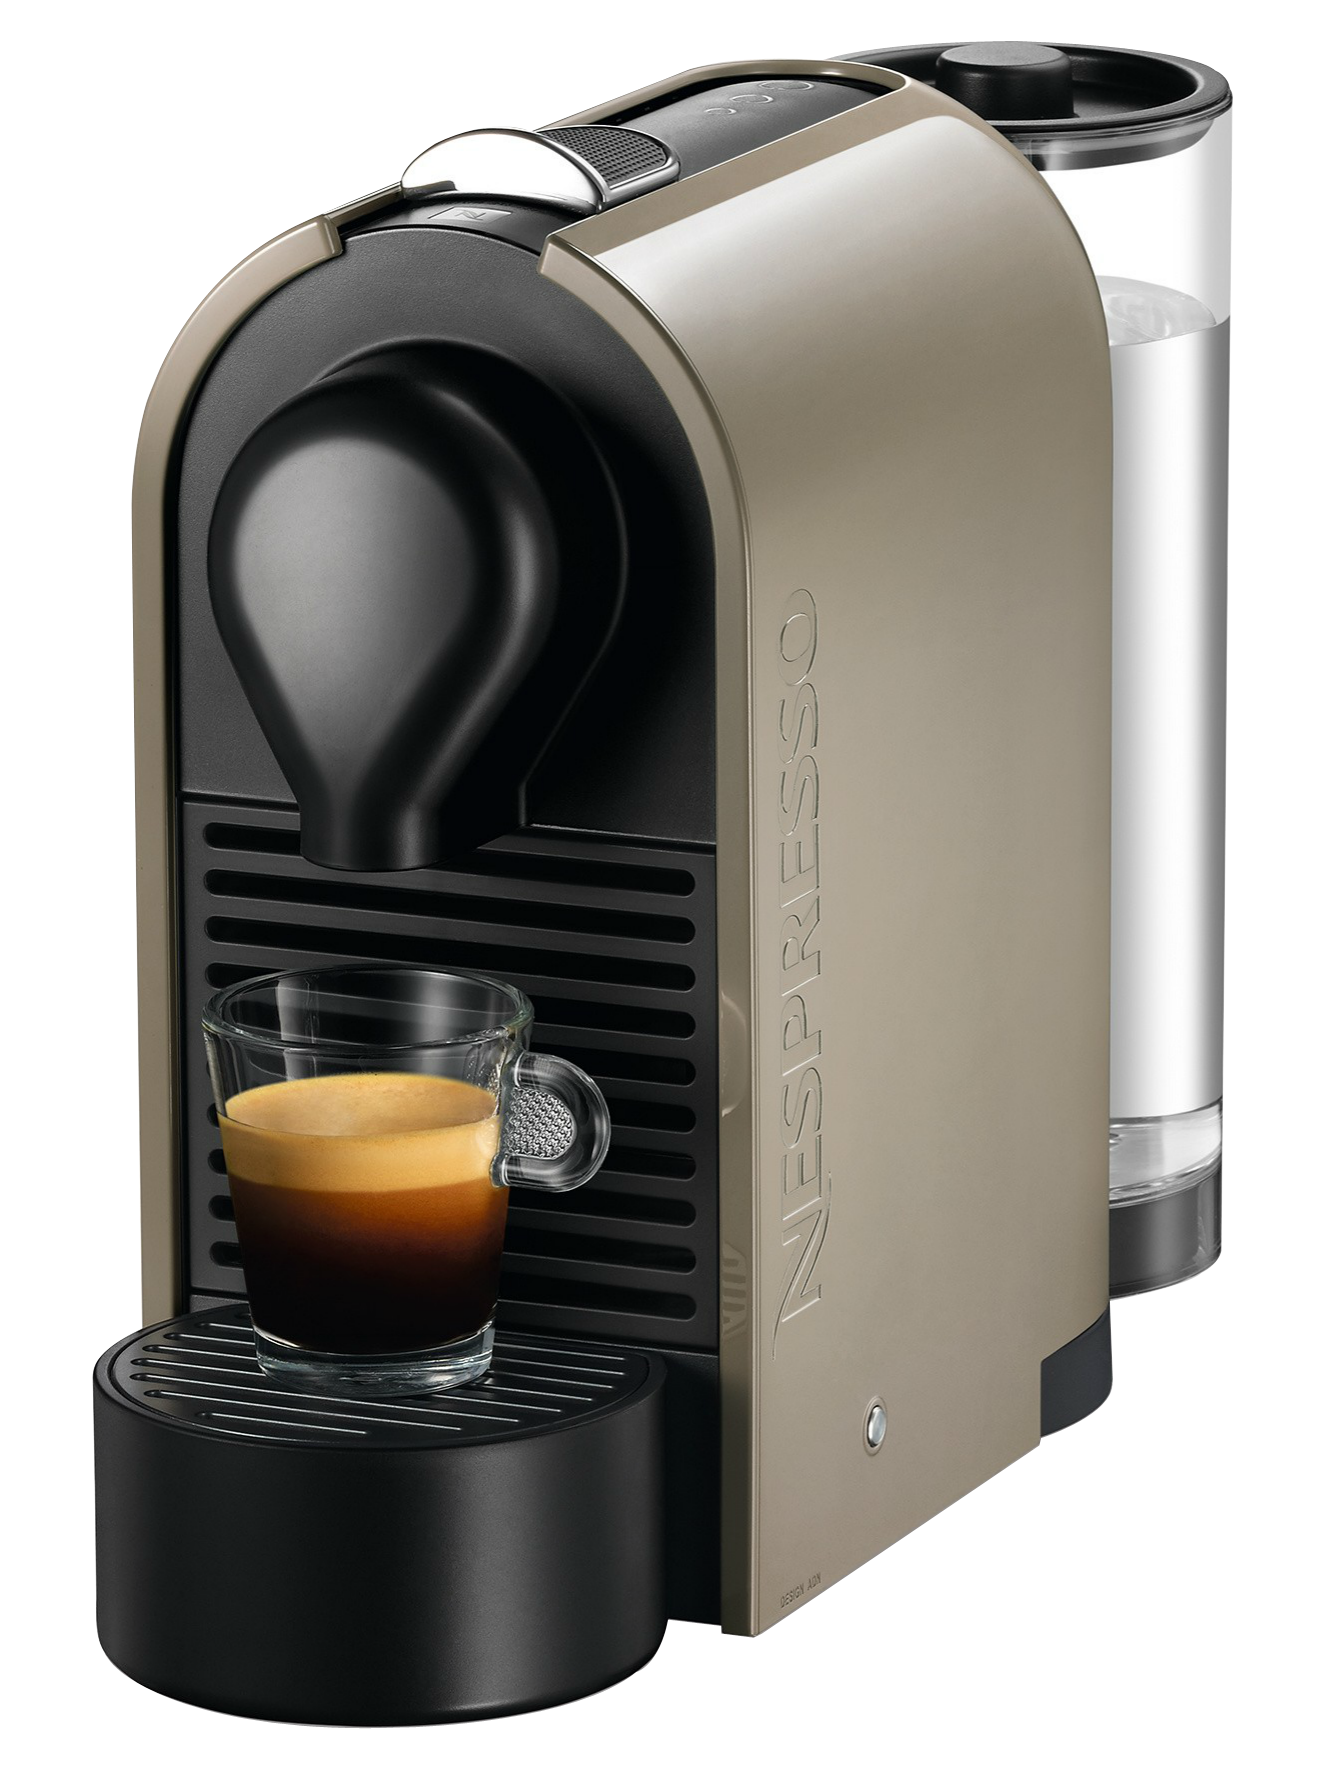 nespresso u taupe pur automatique krups yy1300fd capsules compatibles nespresso moins. Black Bedroom Furniture Sets. Home Design Ideas